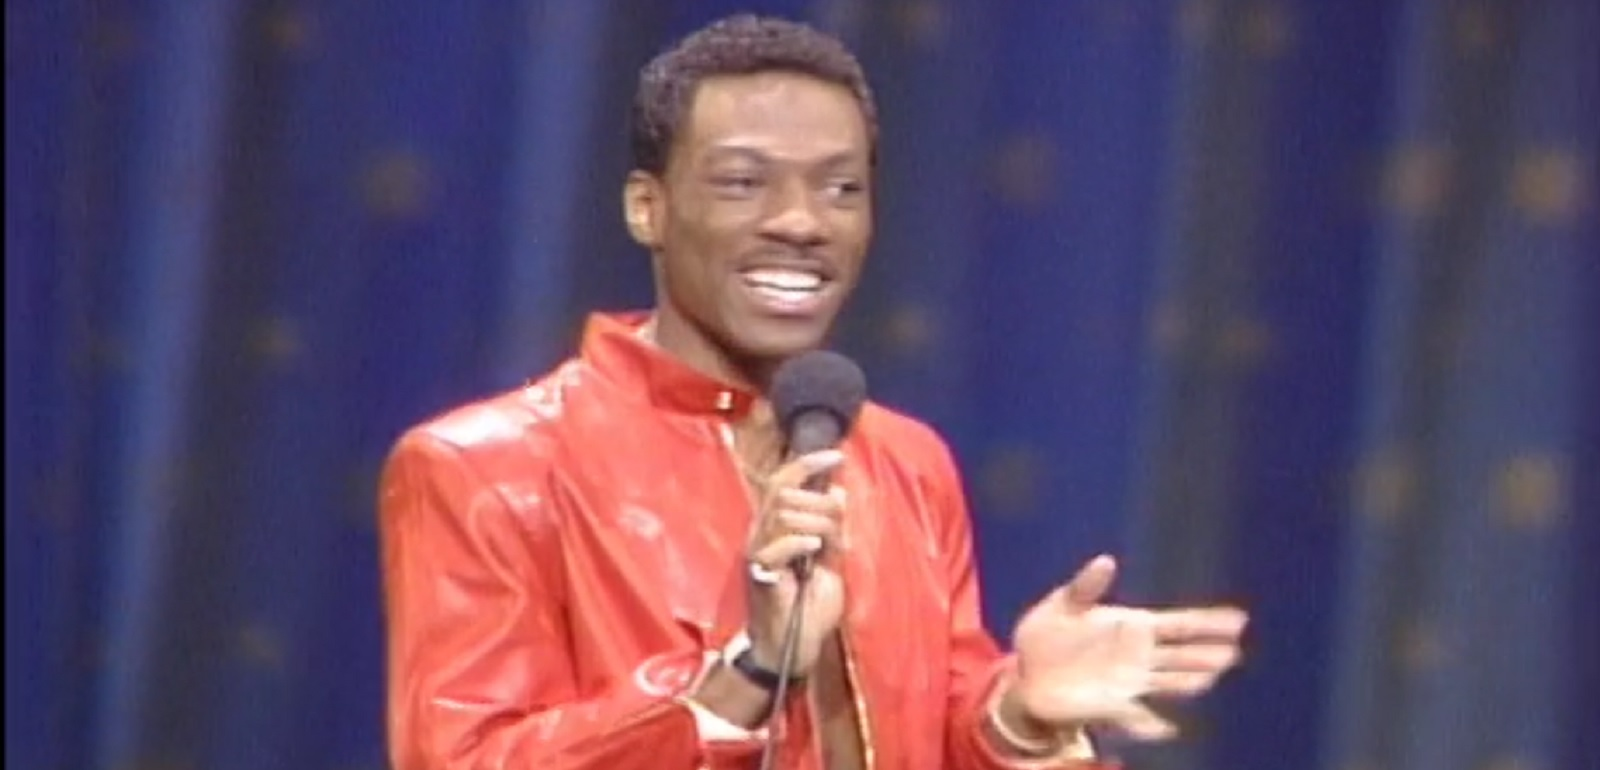 Eddie Murphy delivering a homophobic routine